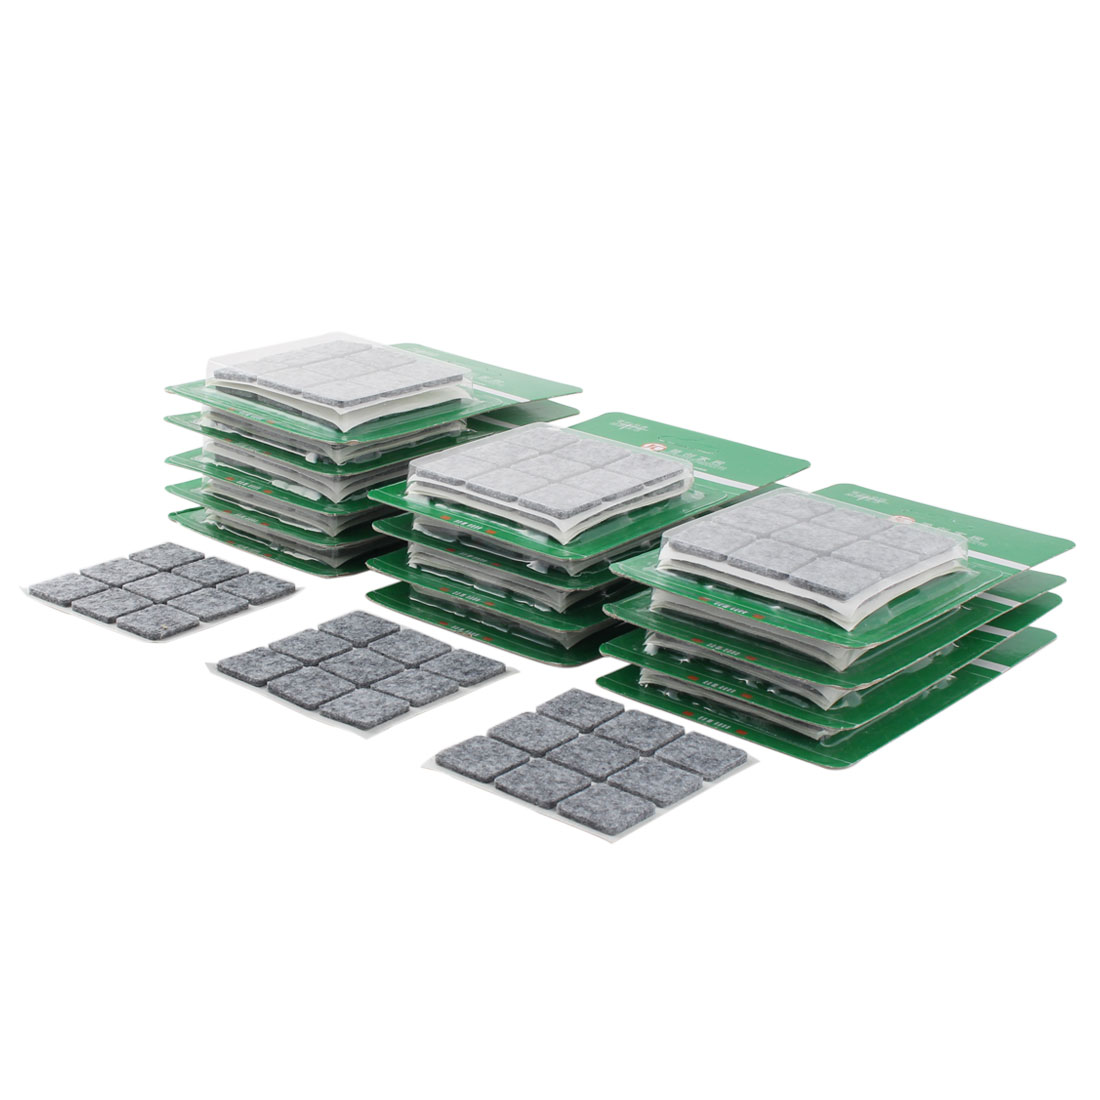 Table Chair Square Anti Scratch Furniture Felt Pads Cover Protector Gray 22 x 22mm 378pcs